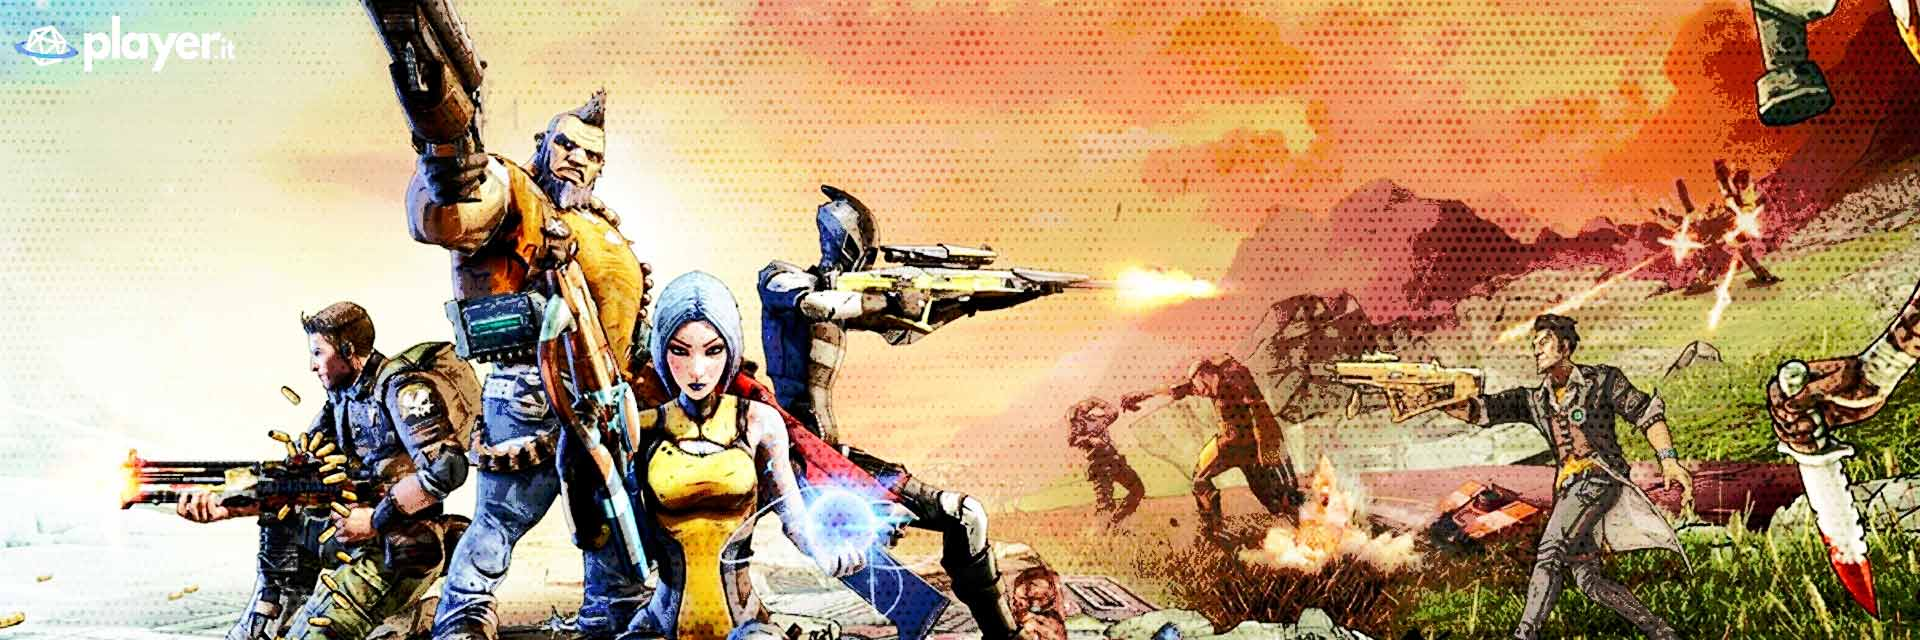 borderlands 2 wallpaper in hd